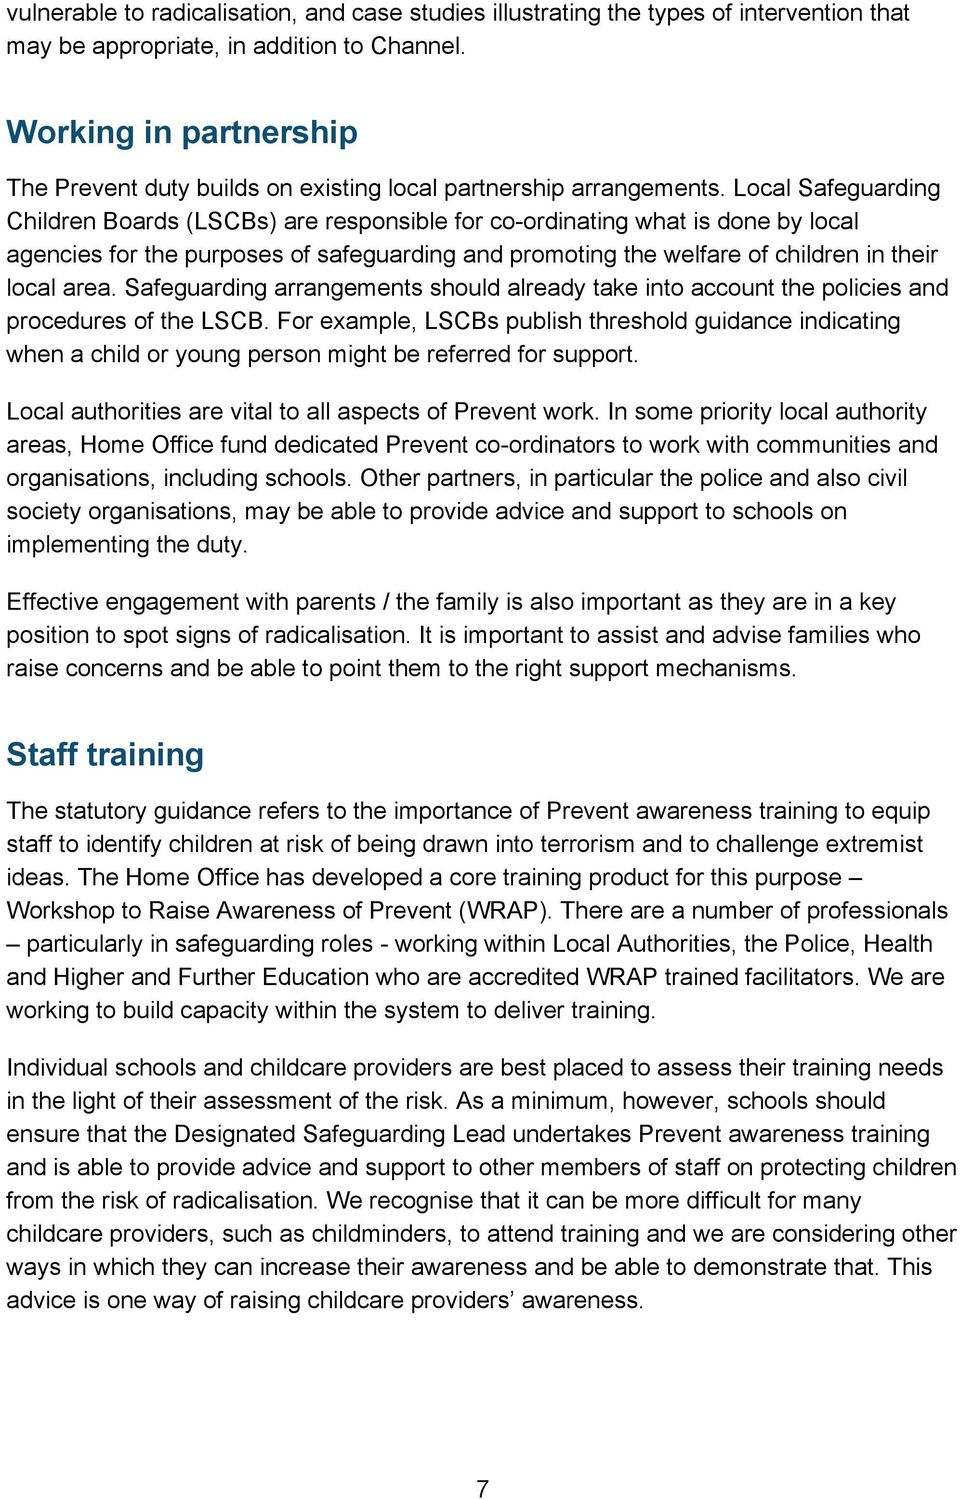 Local Safeguarding Children Boards (LSCBs) are responsible for co-ordinating what is done by local agencies for the purposes of safeguarding and promoting the welfare of children in their local area.